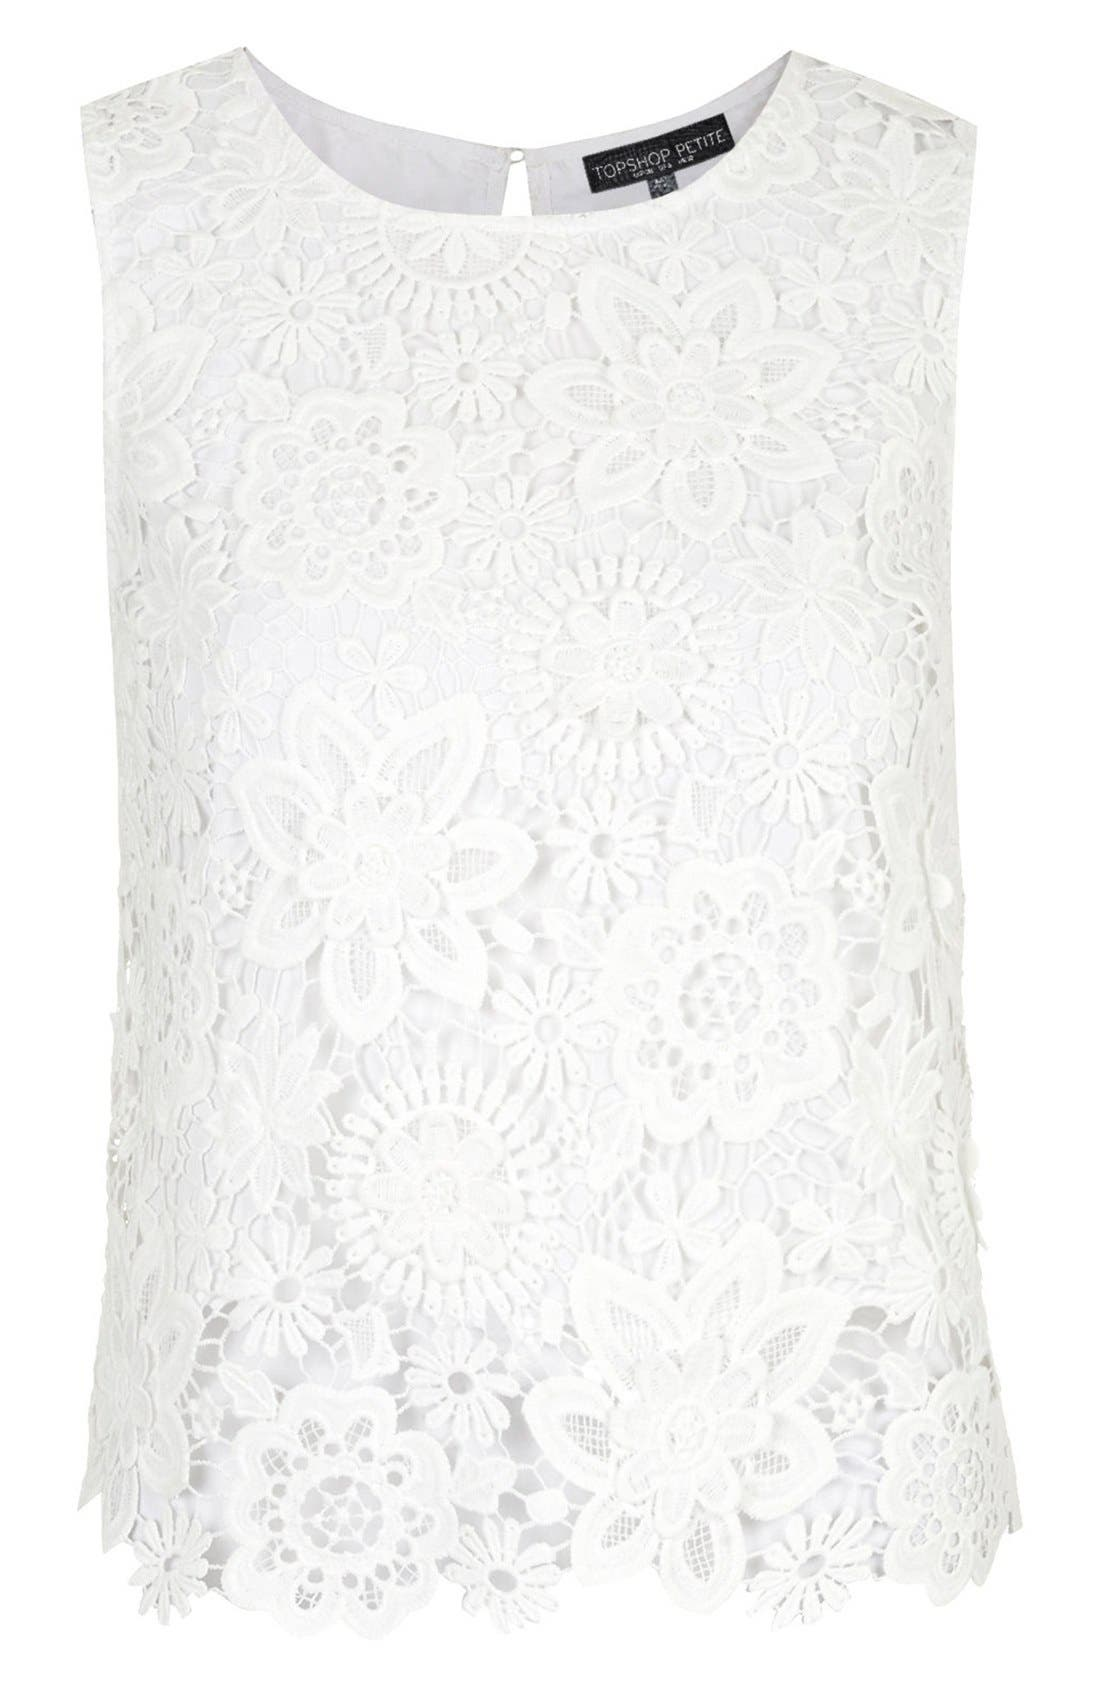 Alternate Image 3  - Topshop Crochet Lace Shell Top (Petite)